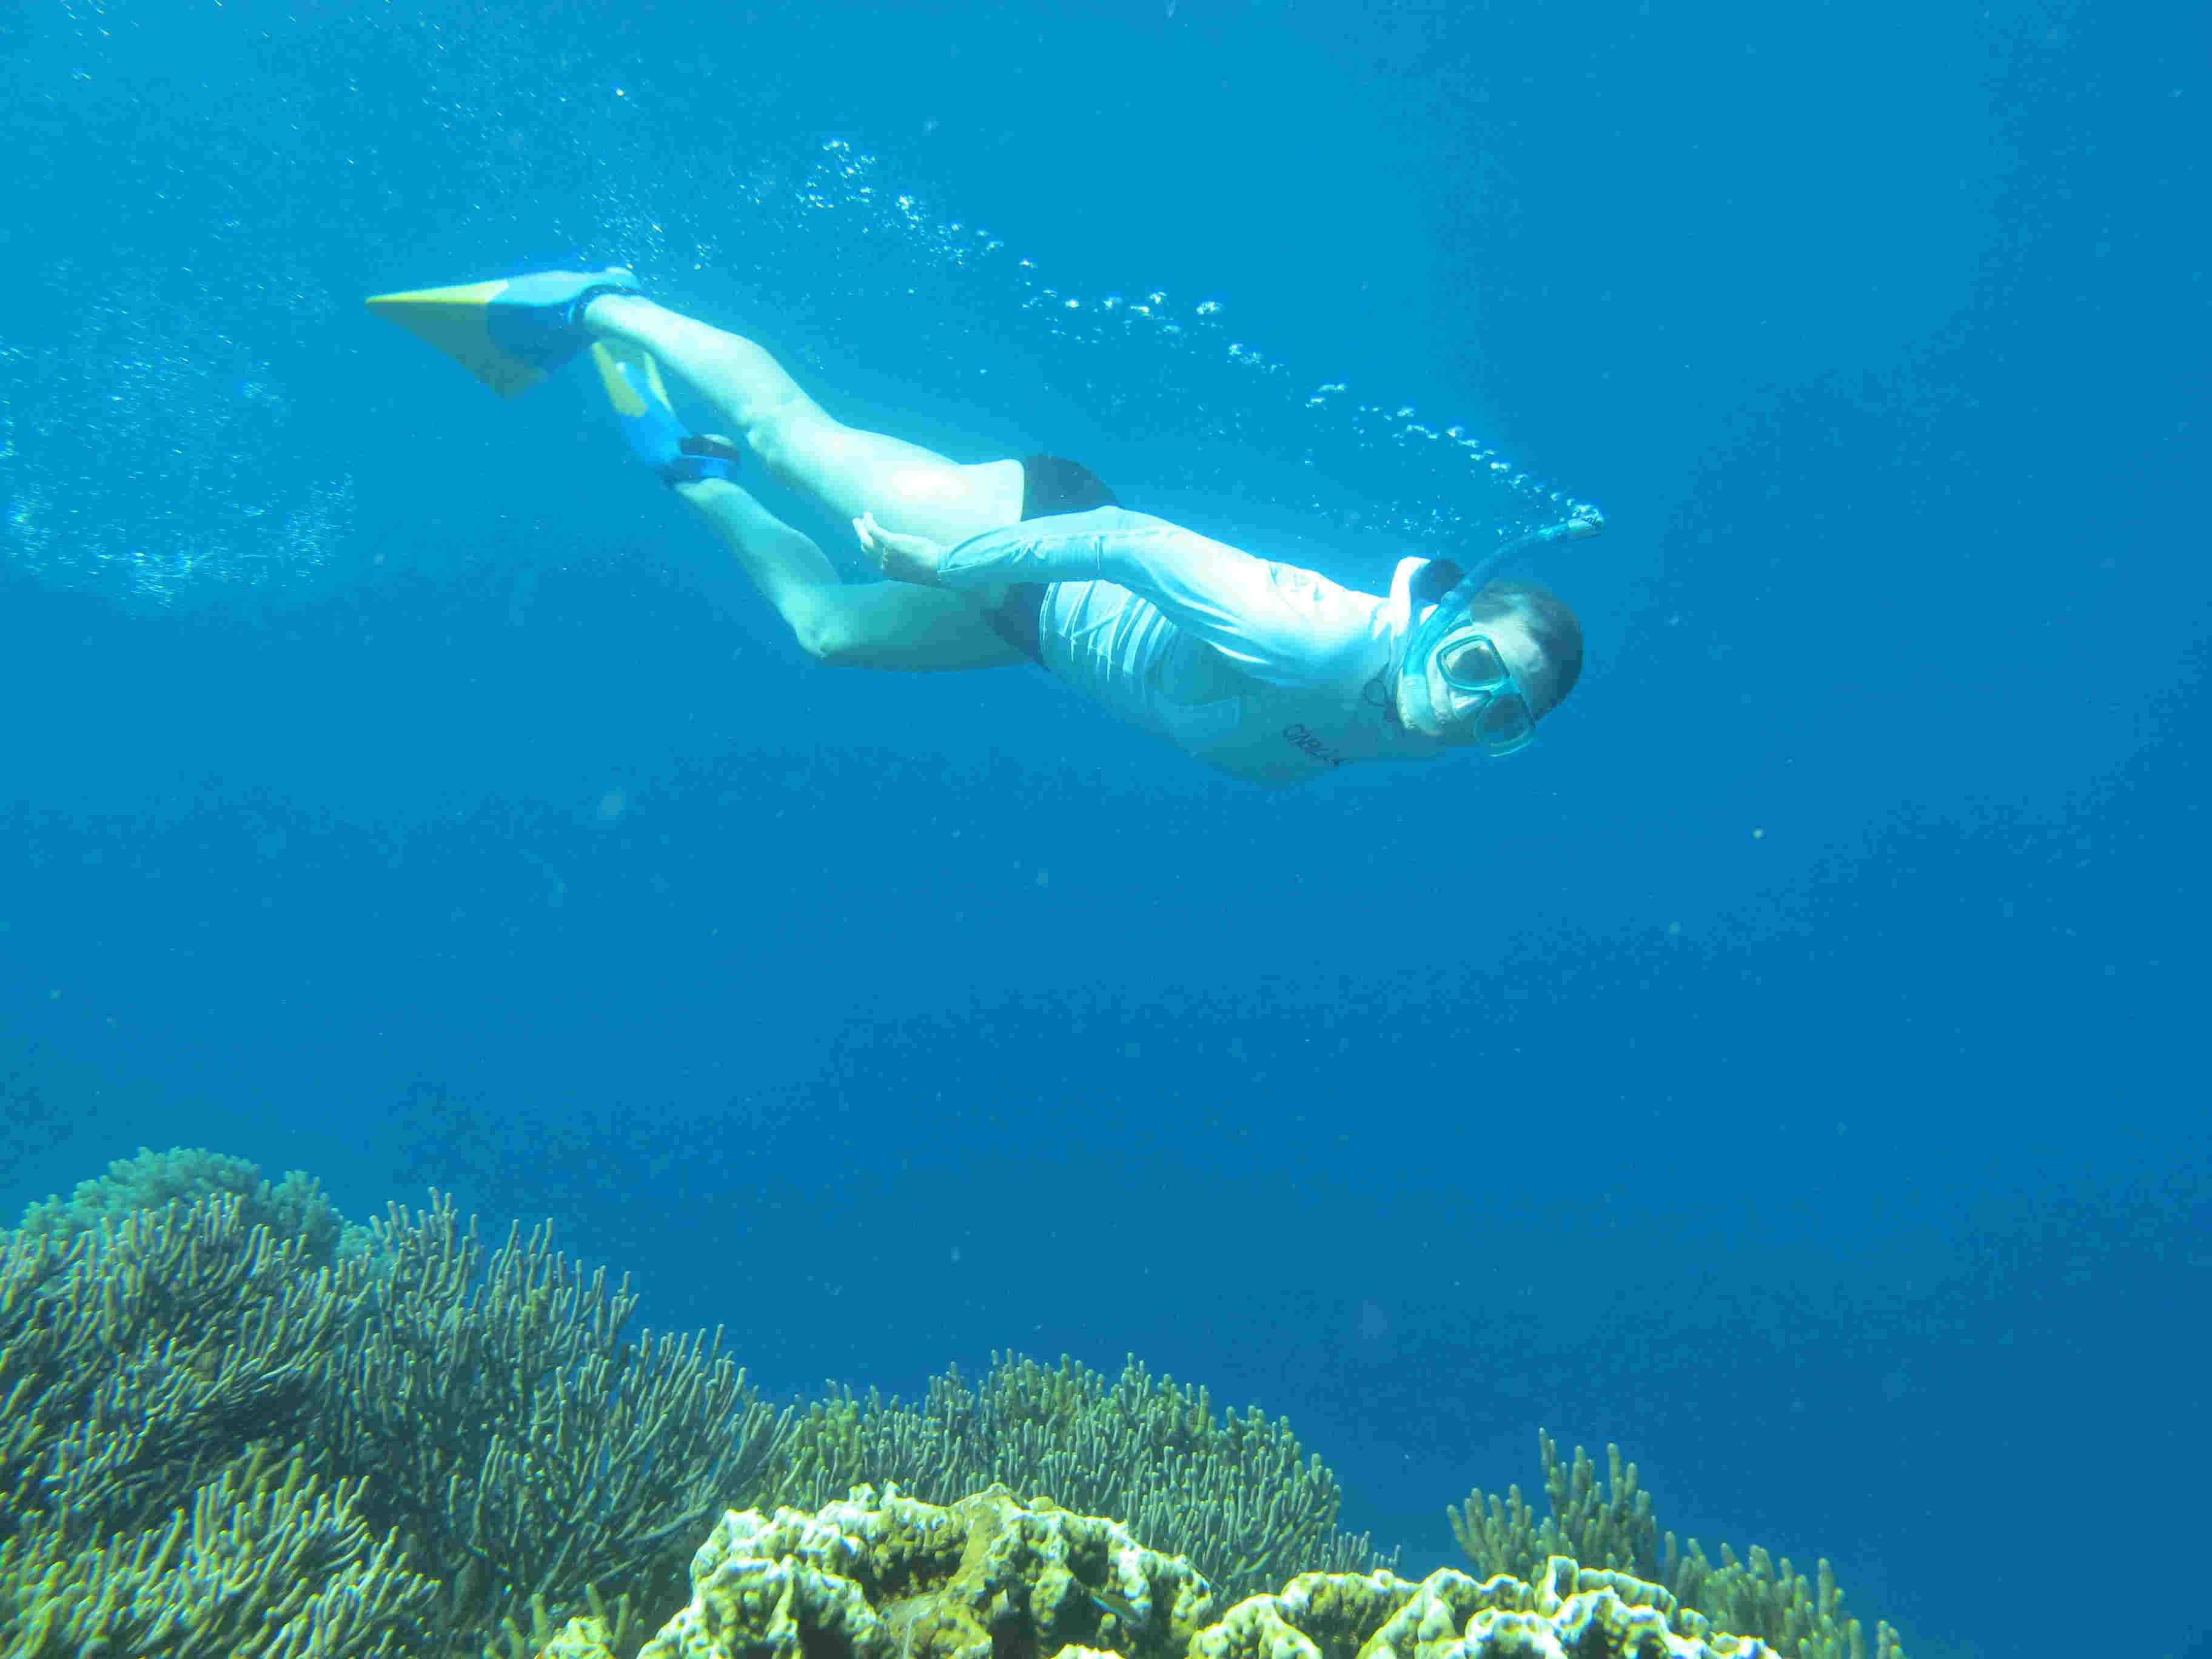 Laura-diving-underwater